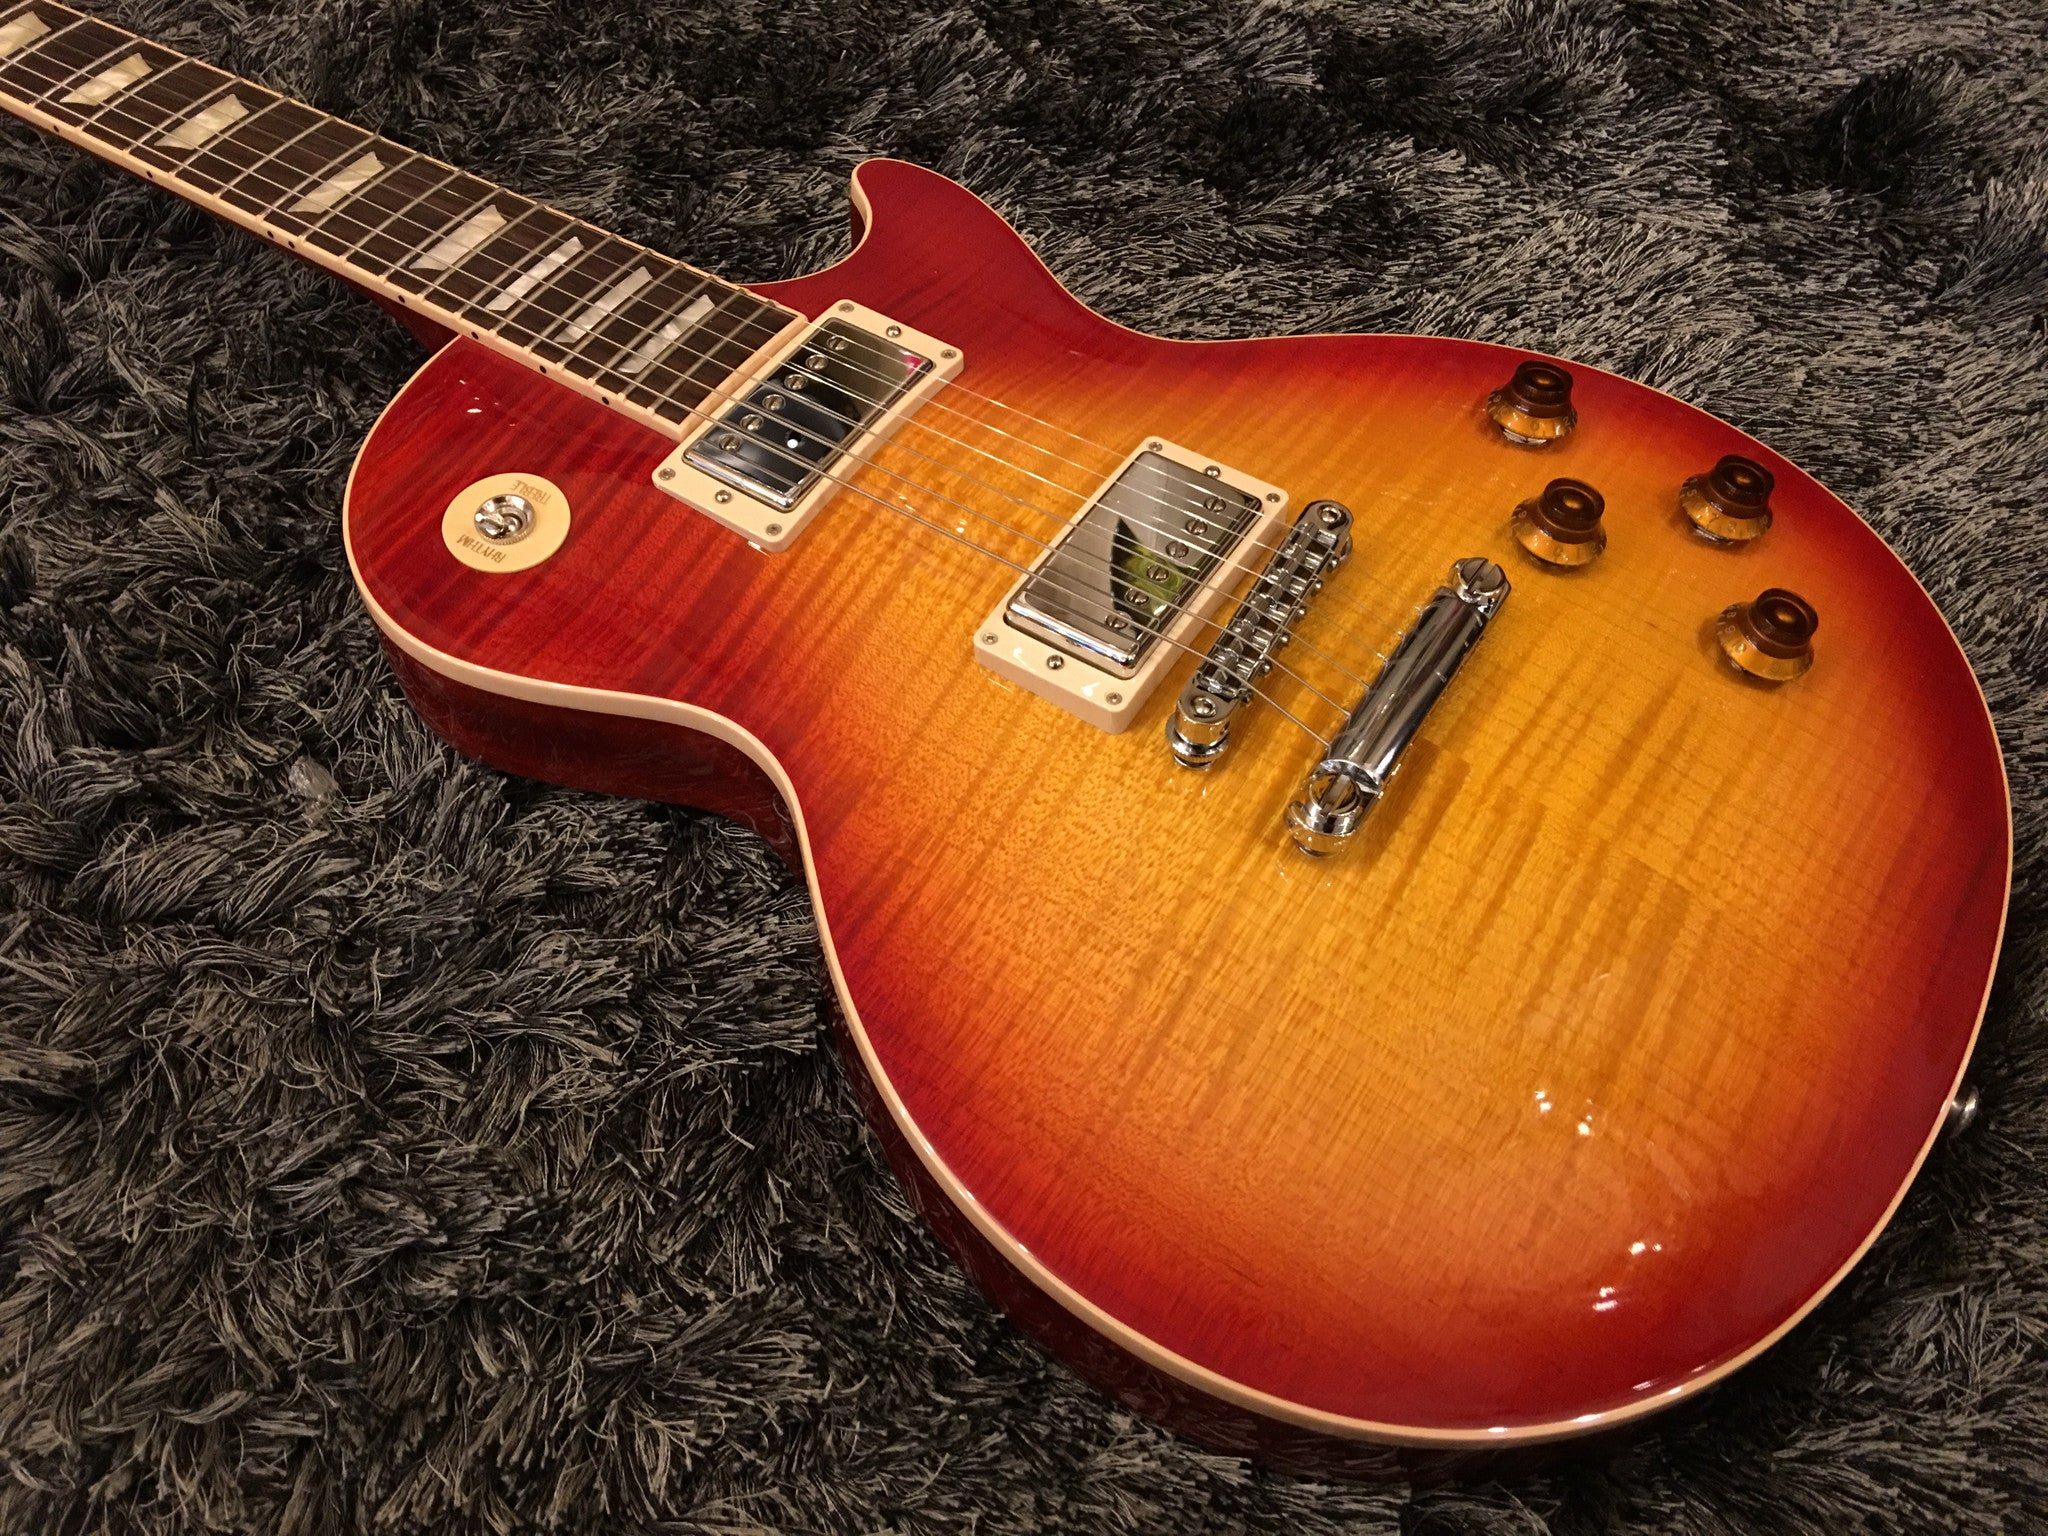 Gibson 2016 Les Paul Standard Plus Top T Electric Guitar   Heritage Cherry Sunburst  62617 - HIENDGUITAR   Gibson gibson2016